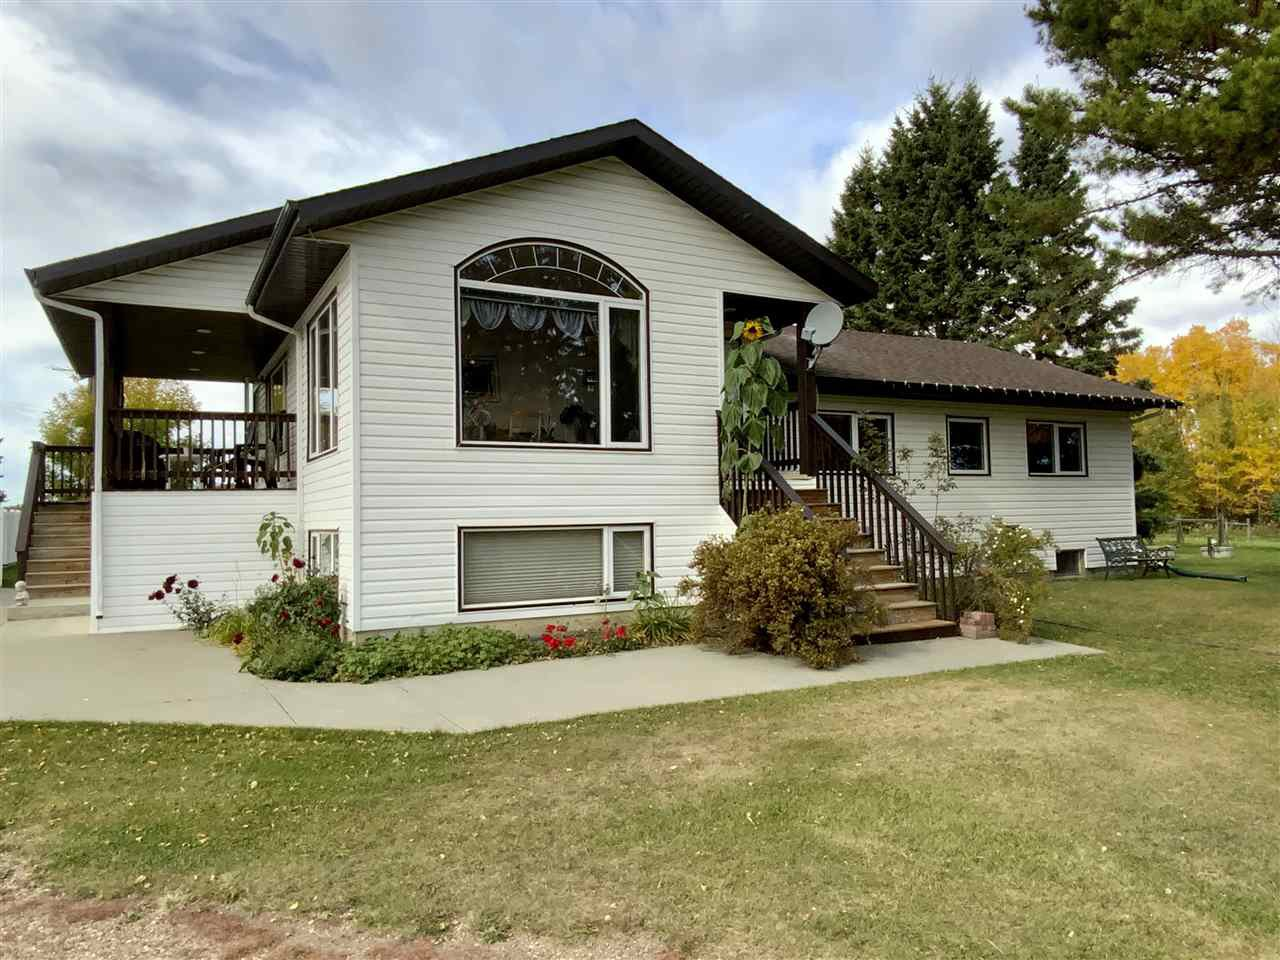 Main Photo: 472080 RGE RD 245: Rural Wetaskiwin County House for sale : MLS®# E4216024